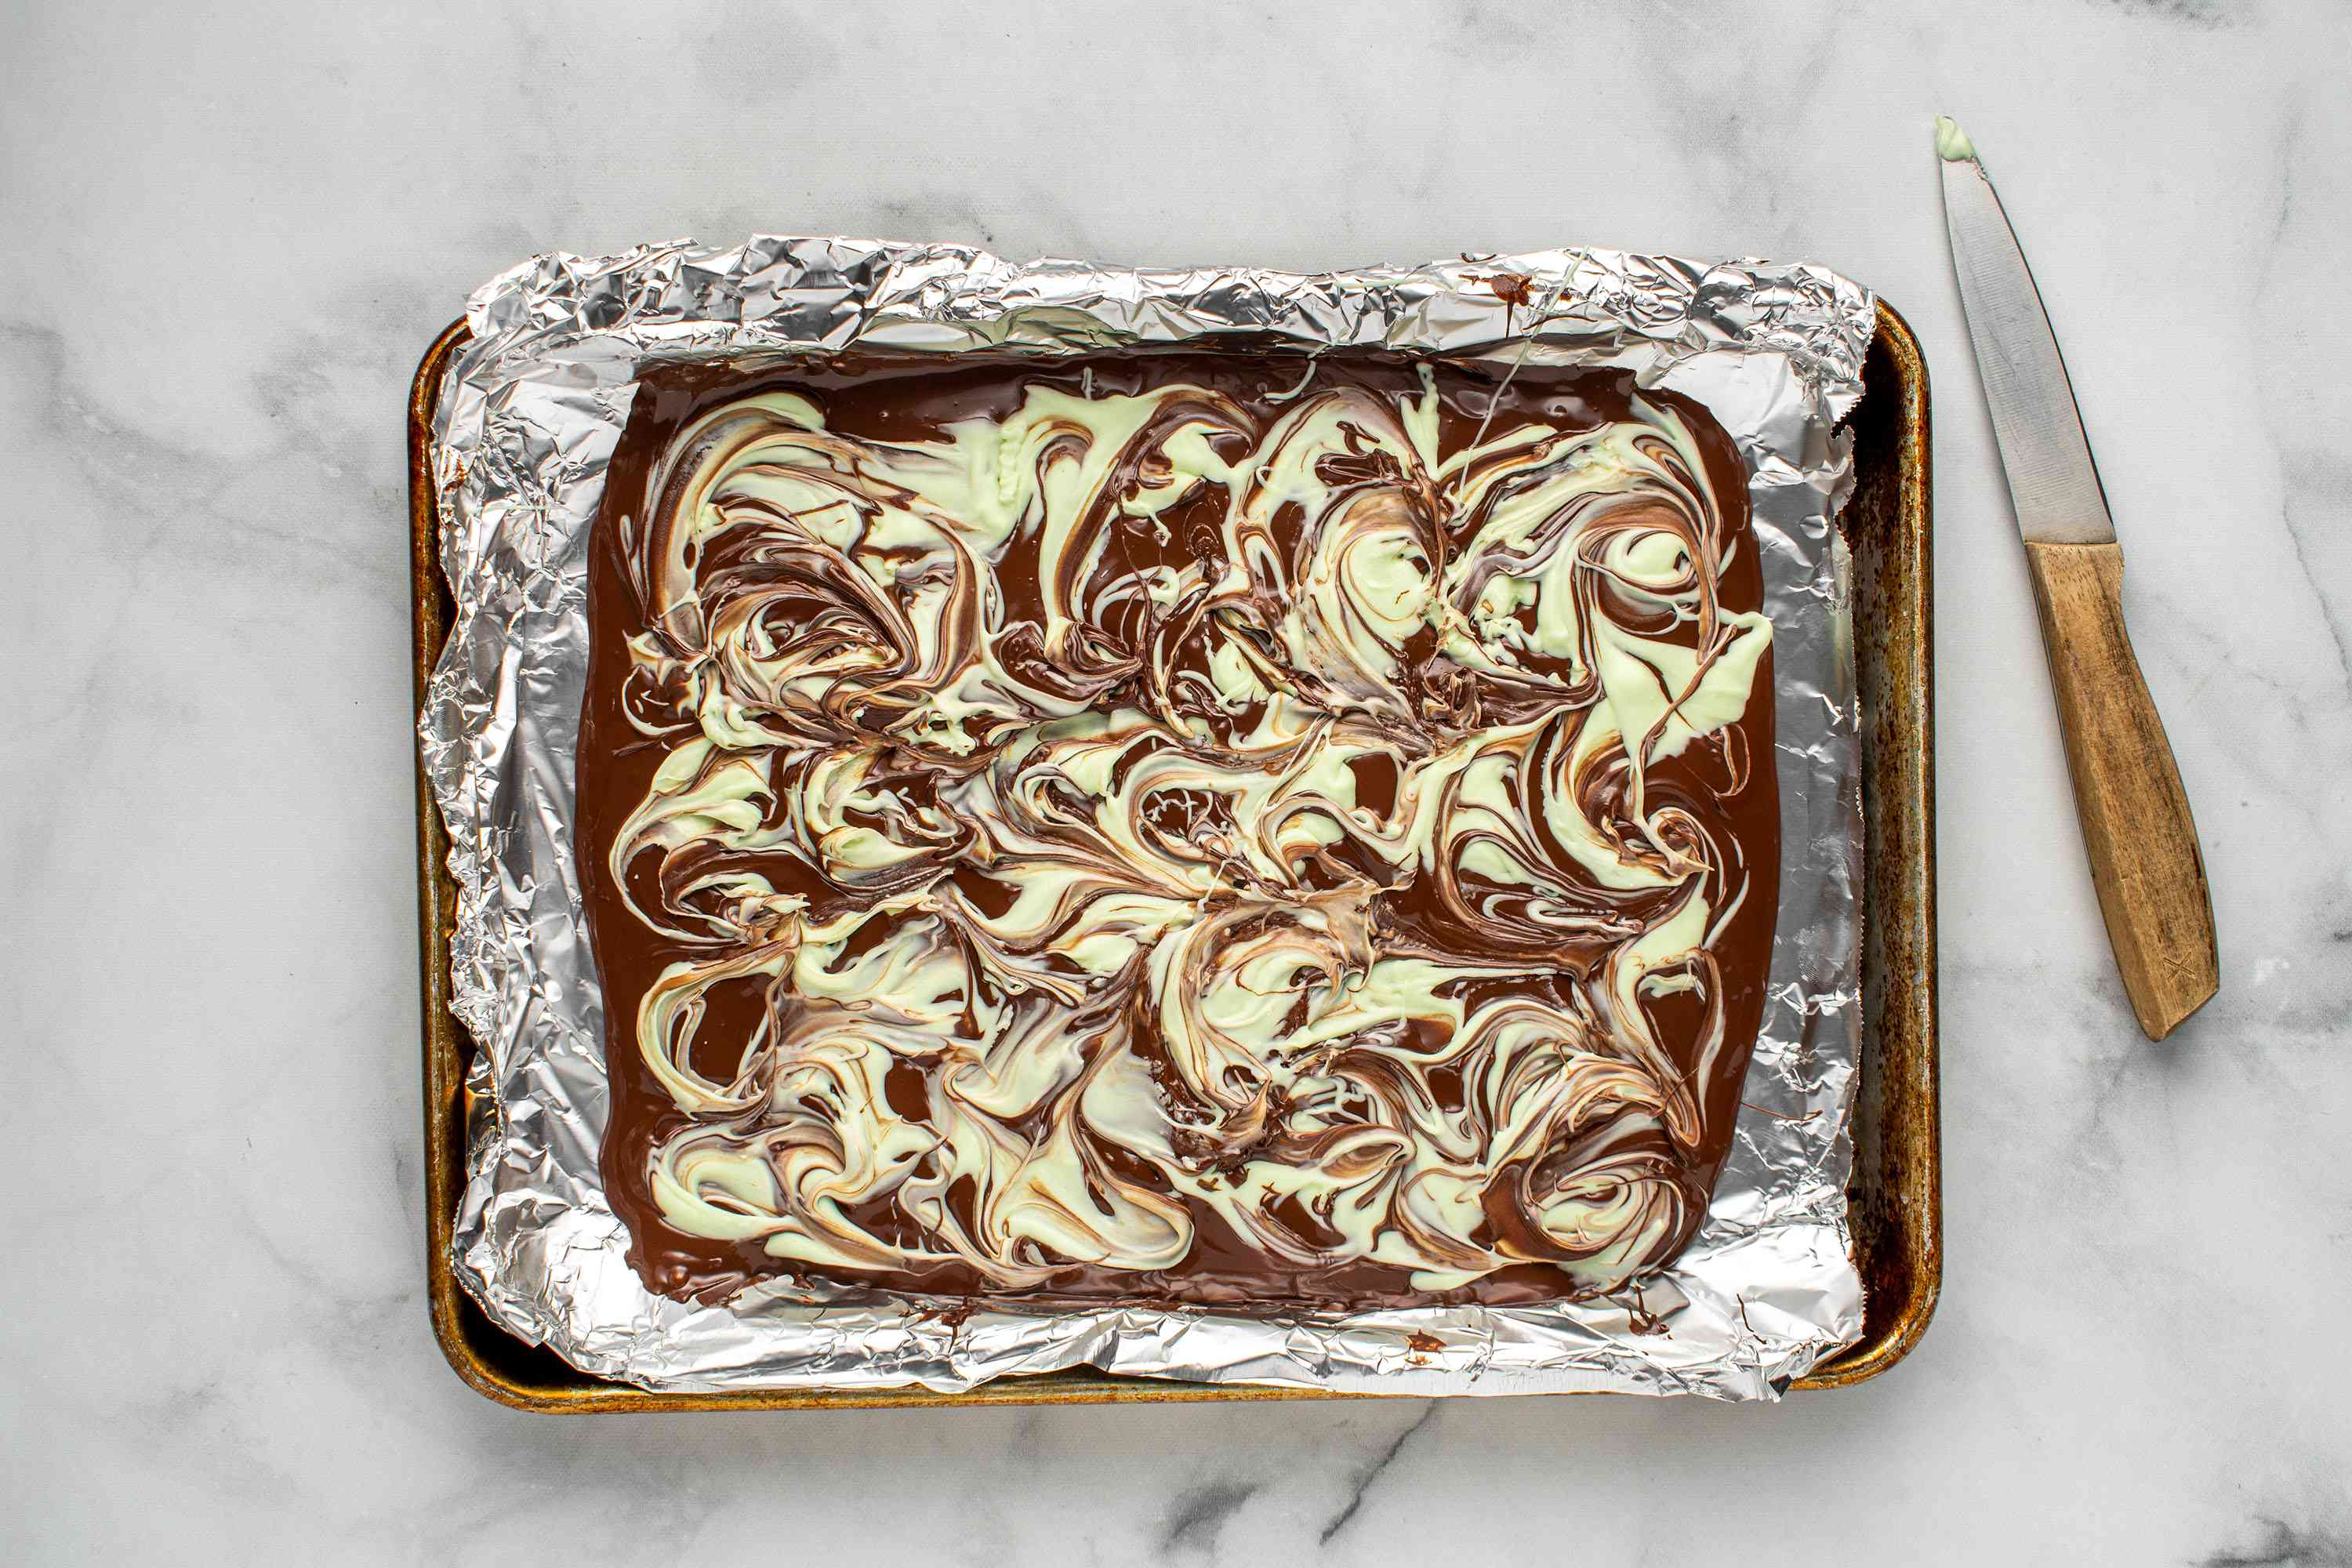 dark and white chocolate swirled together on a baking sheet